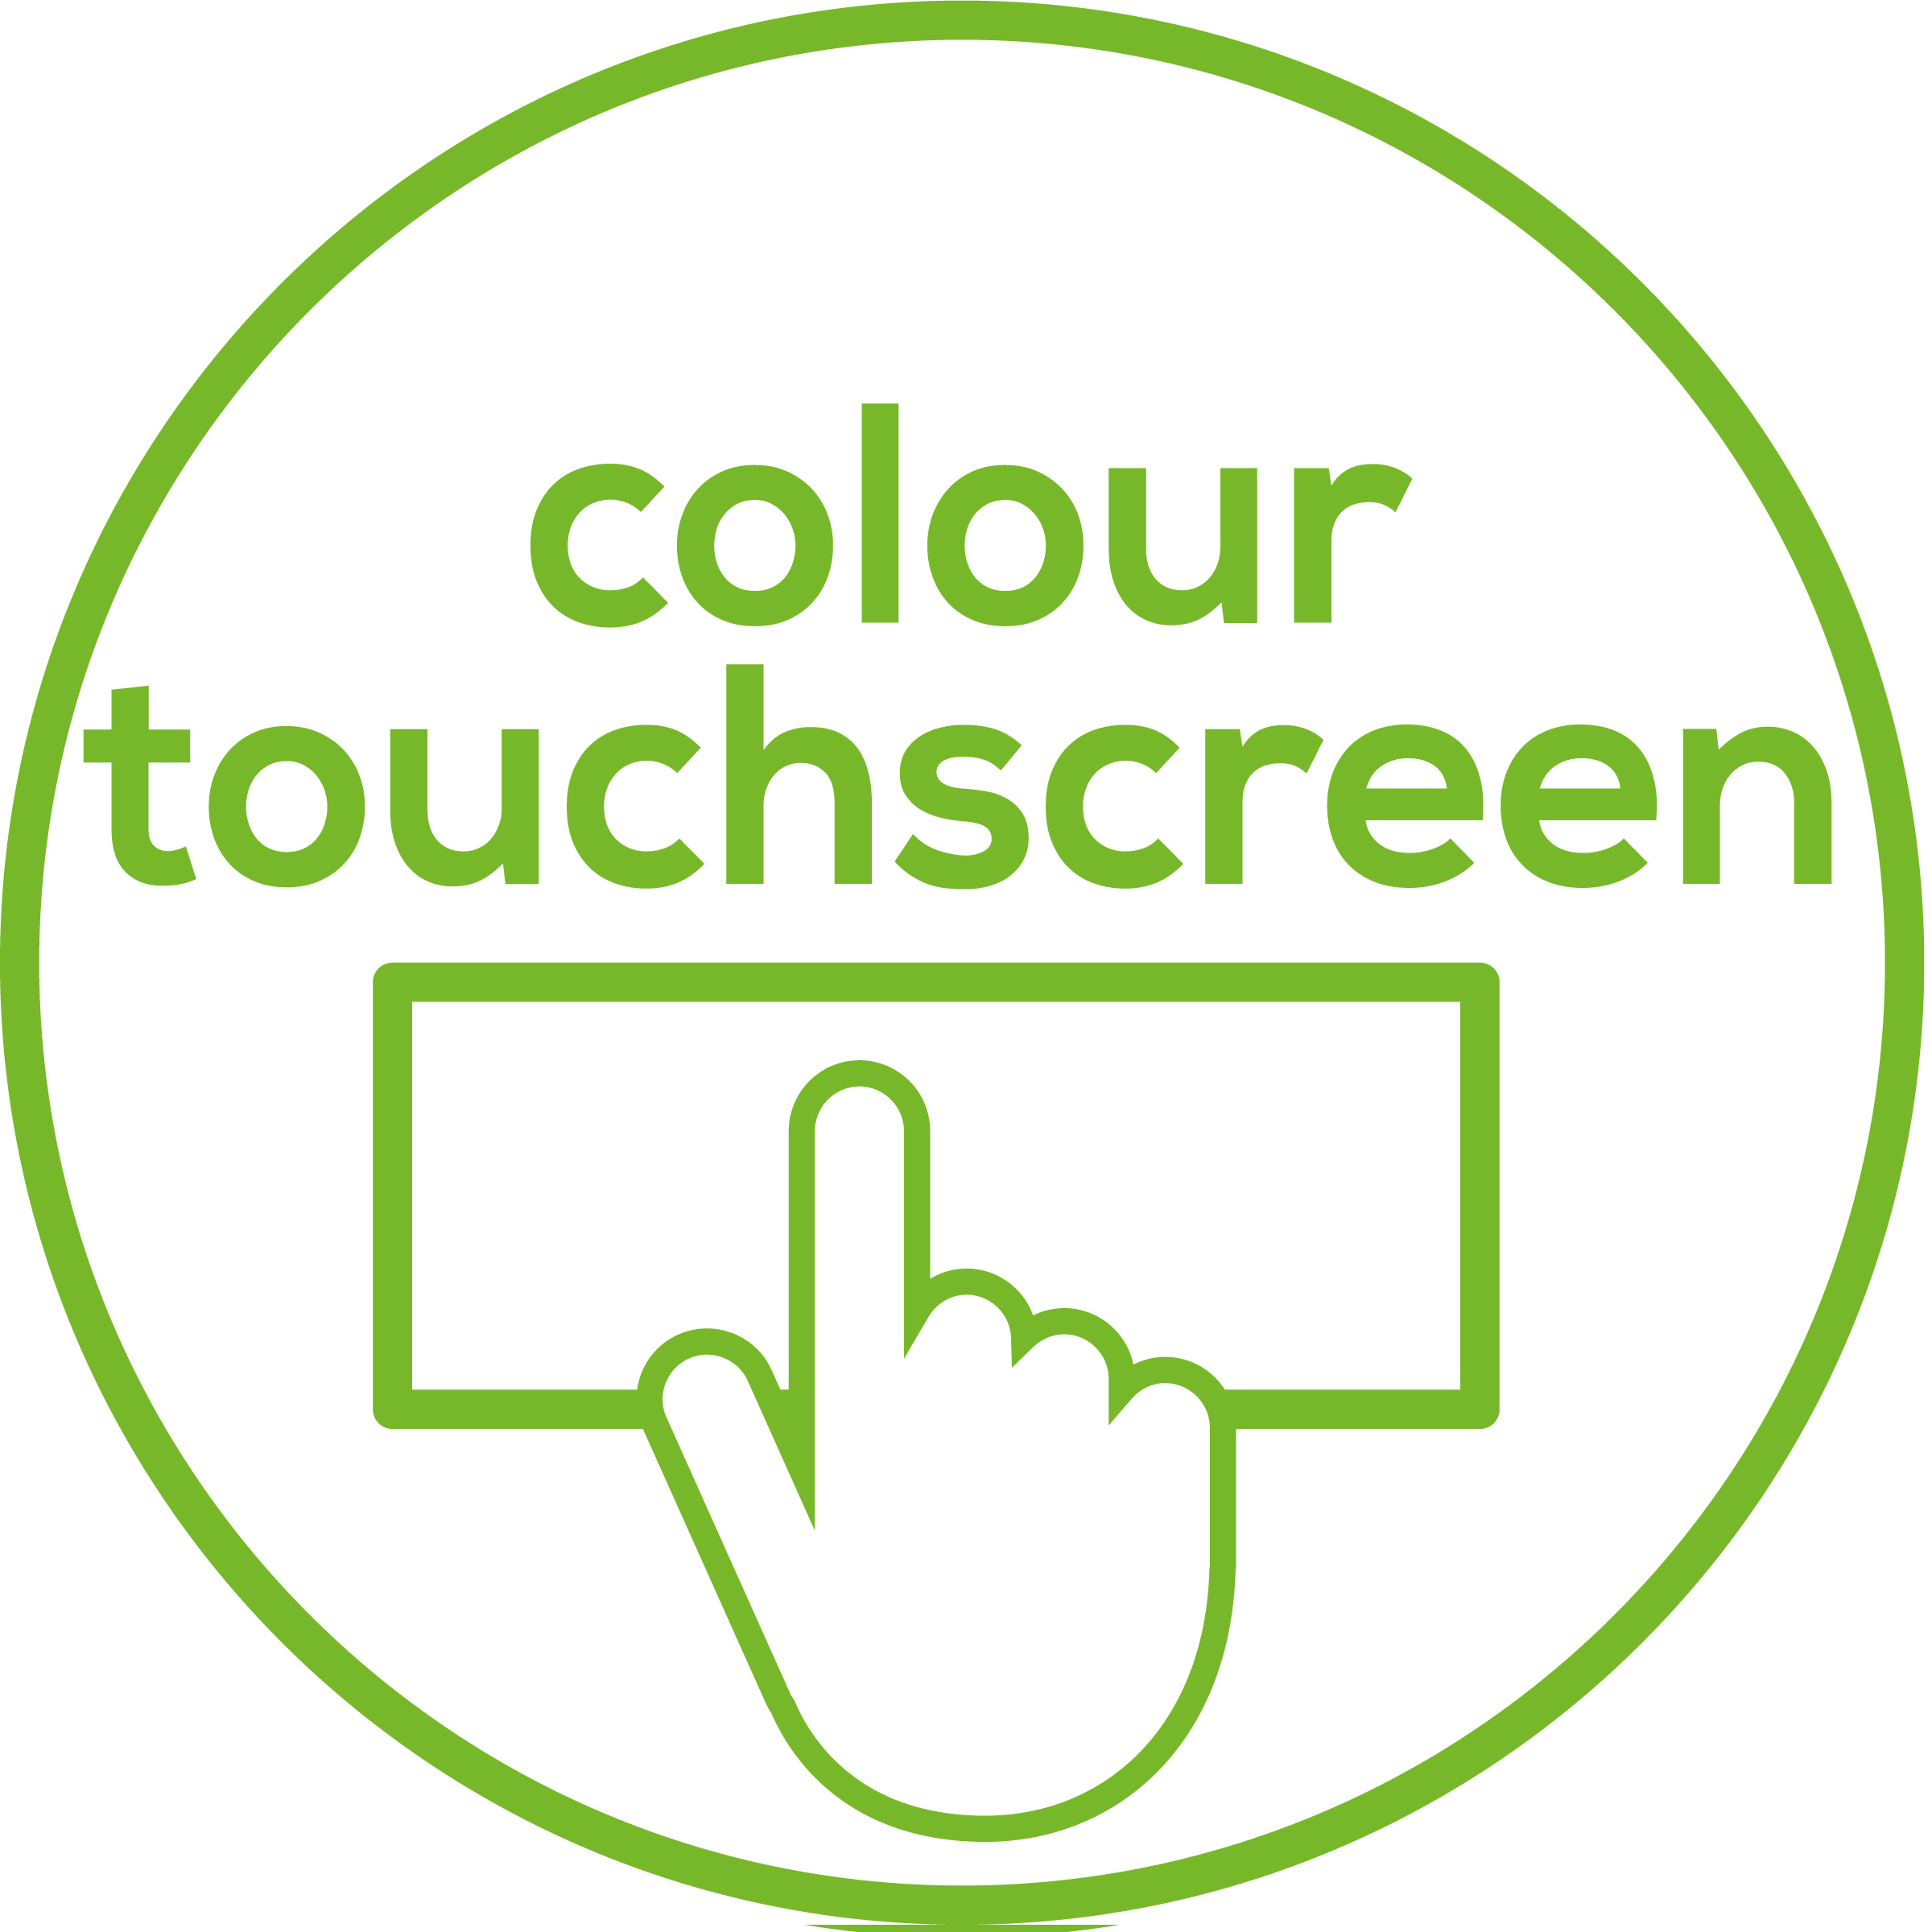 Colour touchscreen Colour touchscreen for easier recognition of notifications